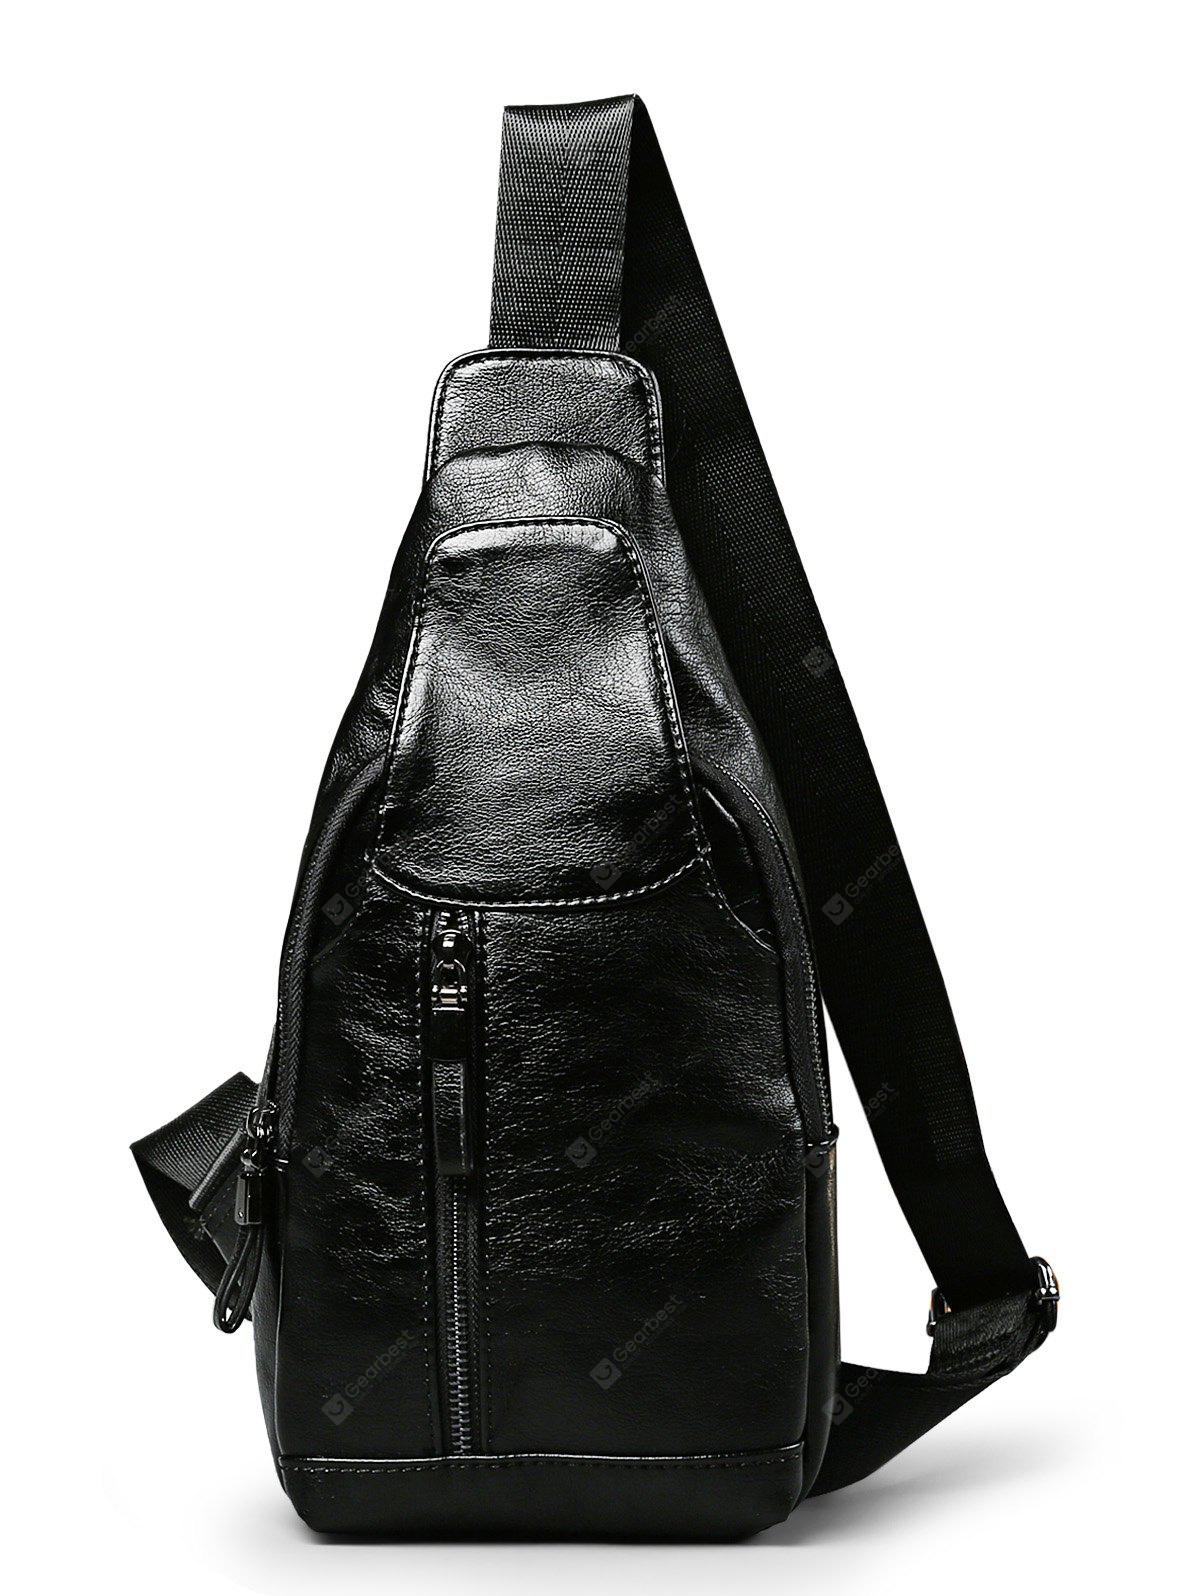 Vintage PU Textured-leather Men Chest Bag Crossbody Pack